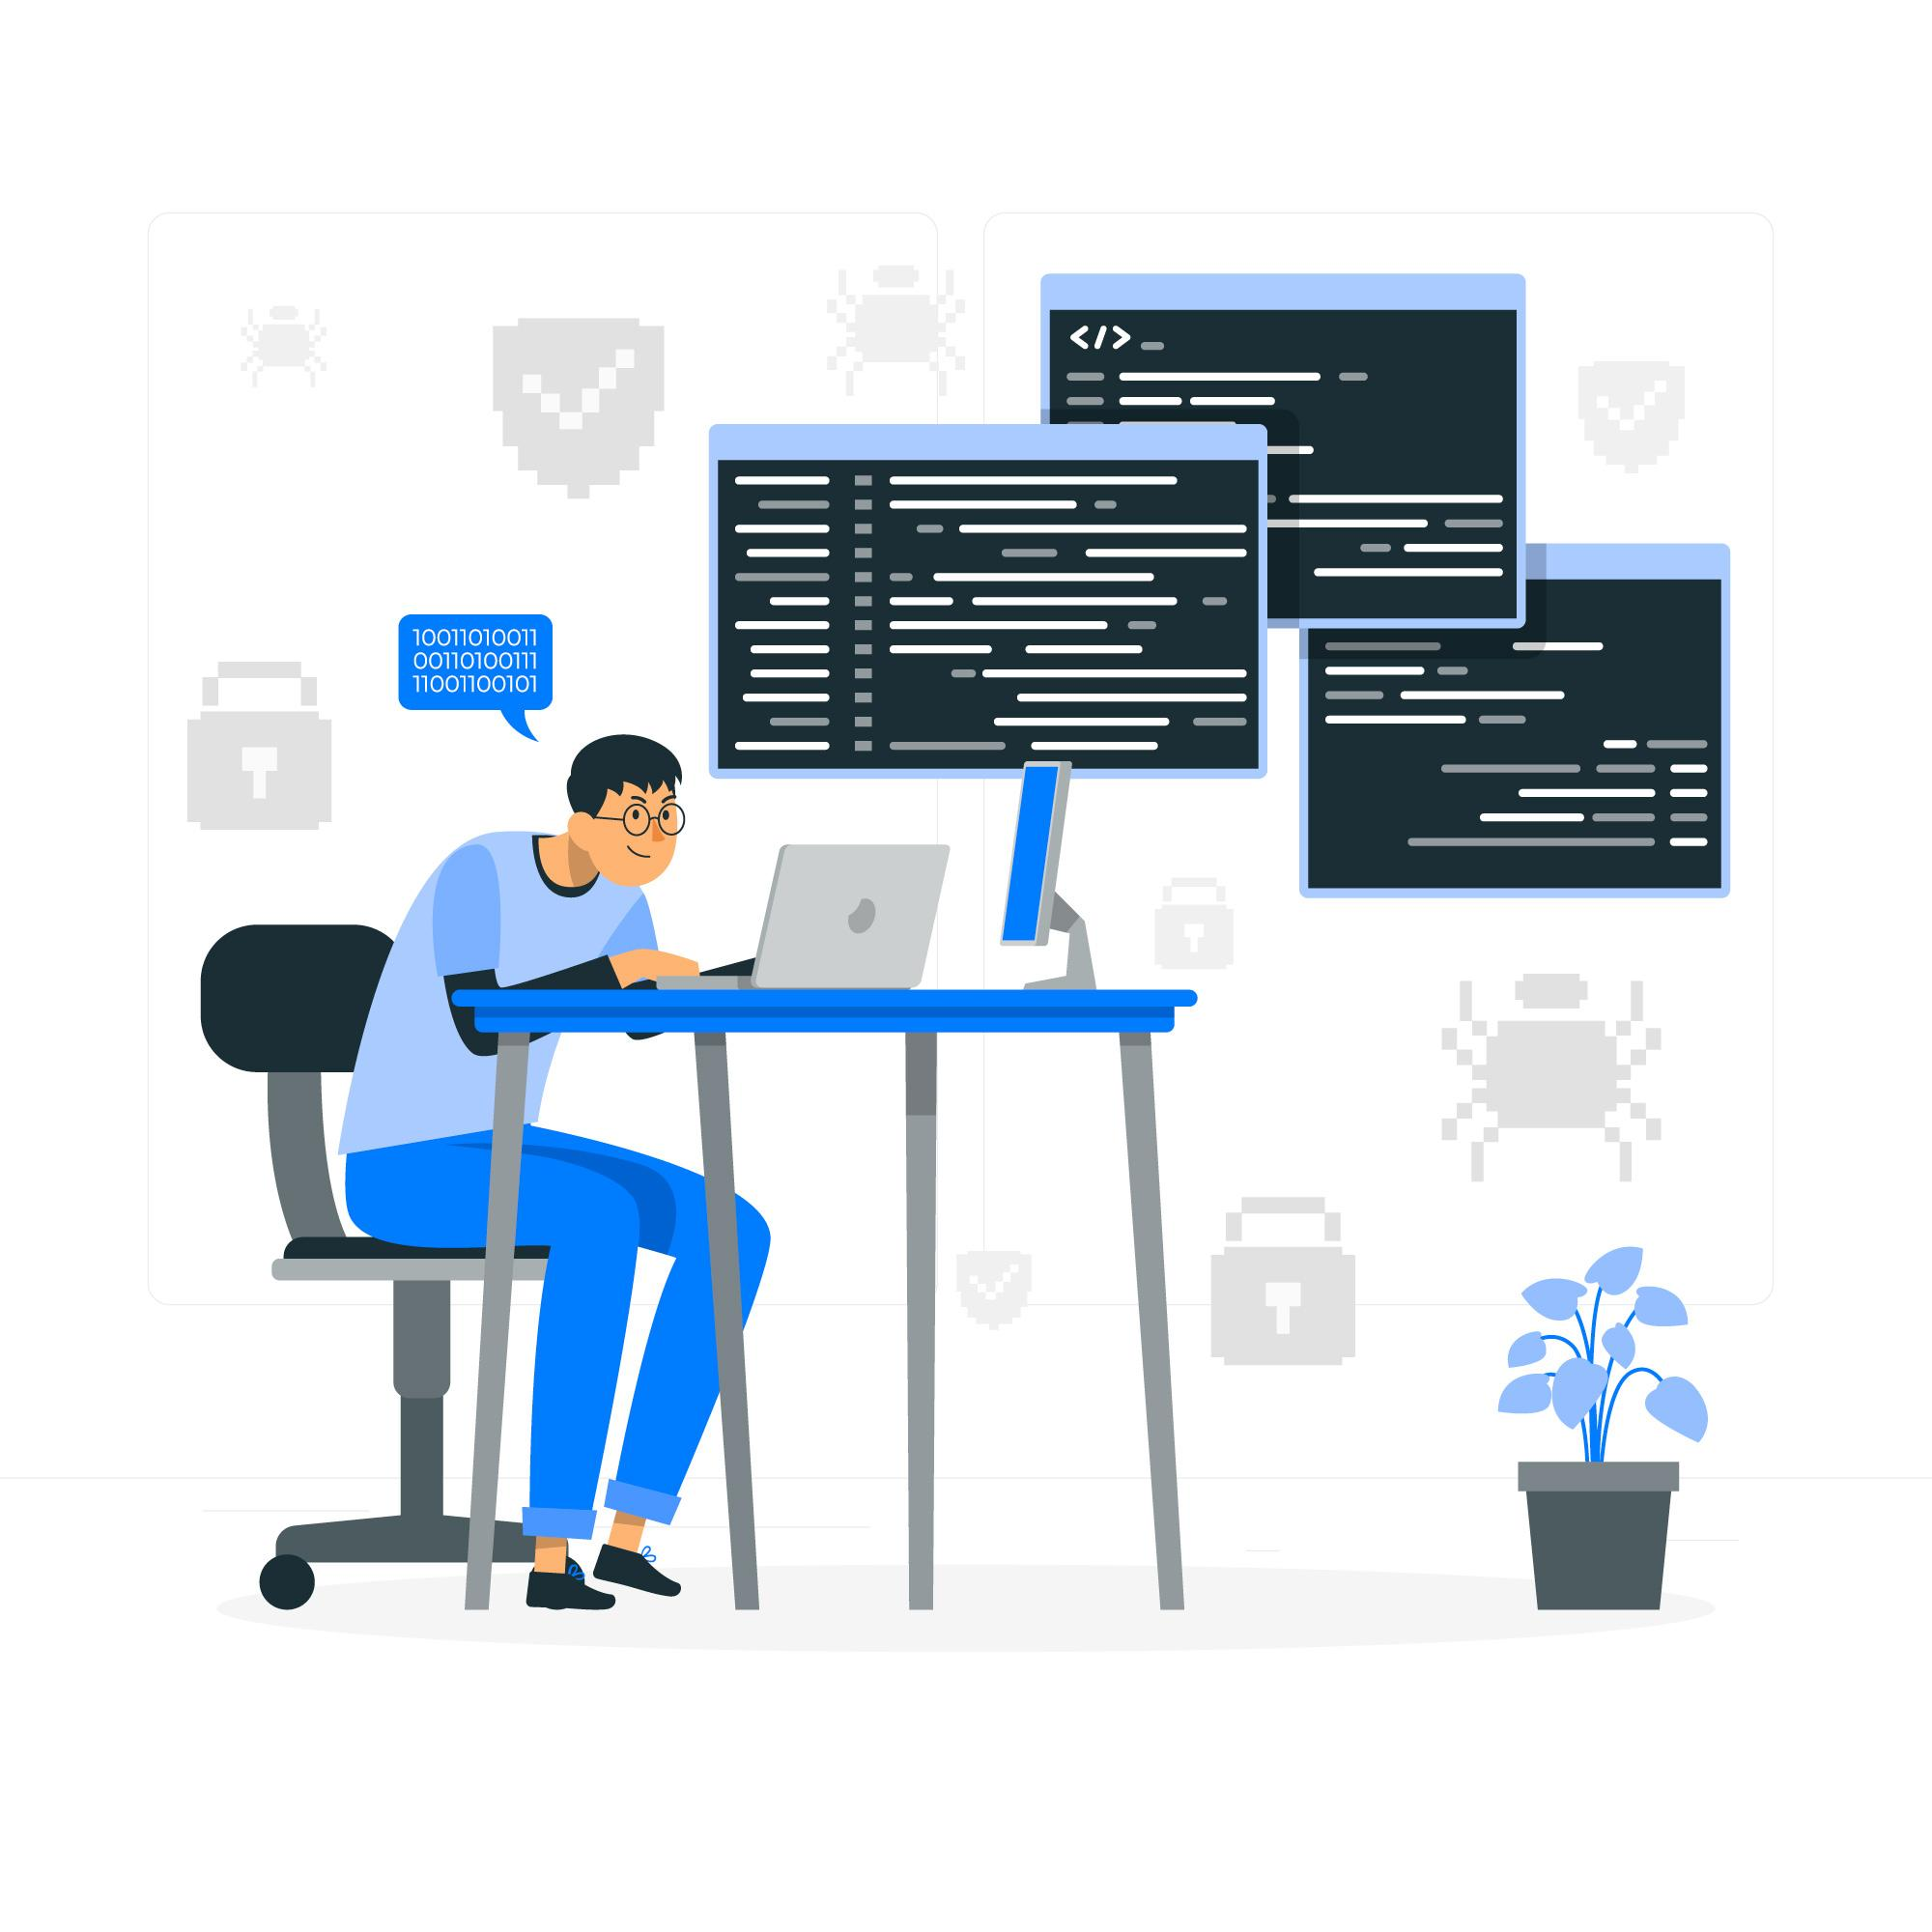 Testing as a crucial part of software development